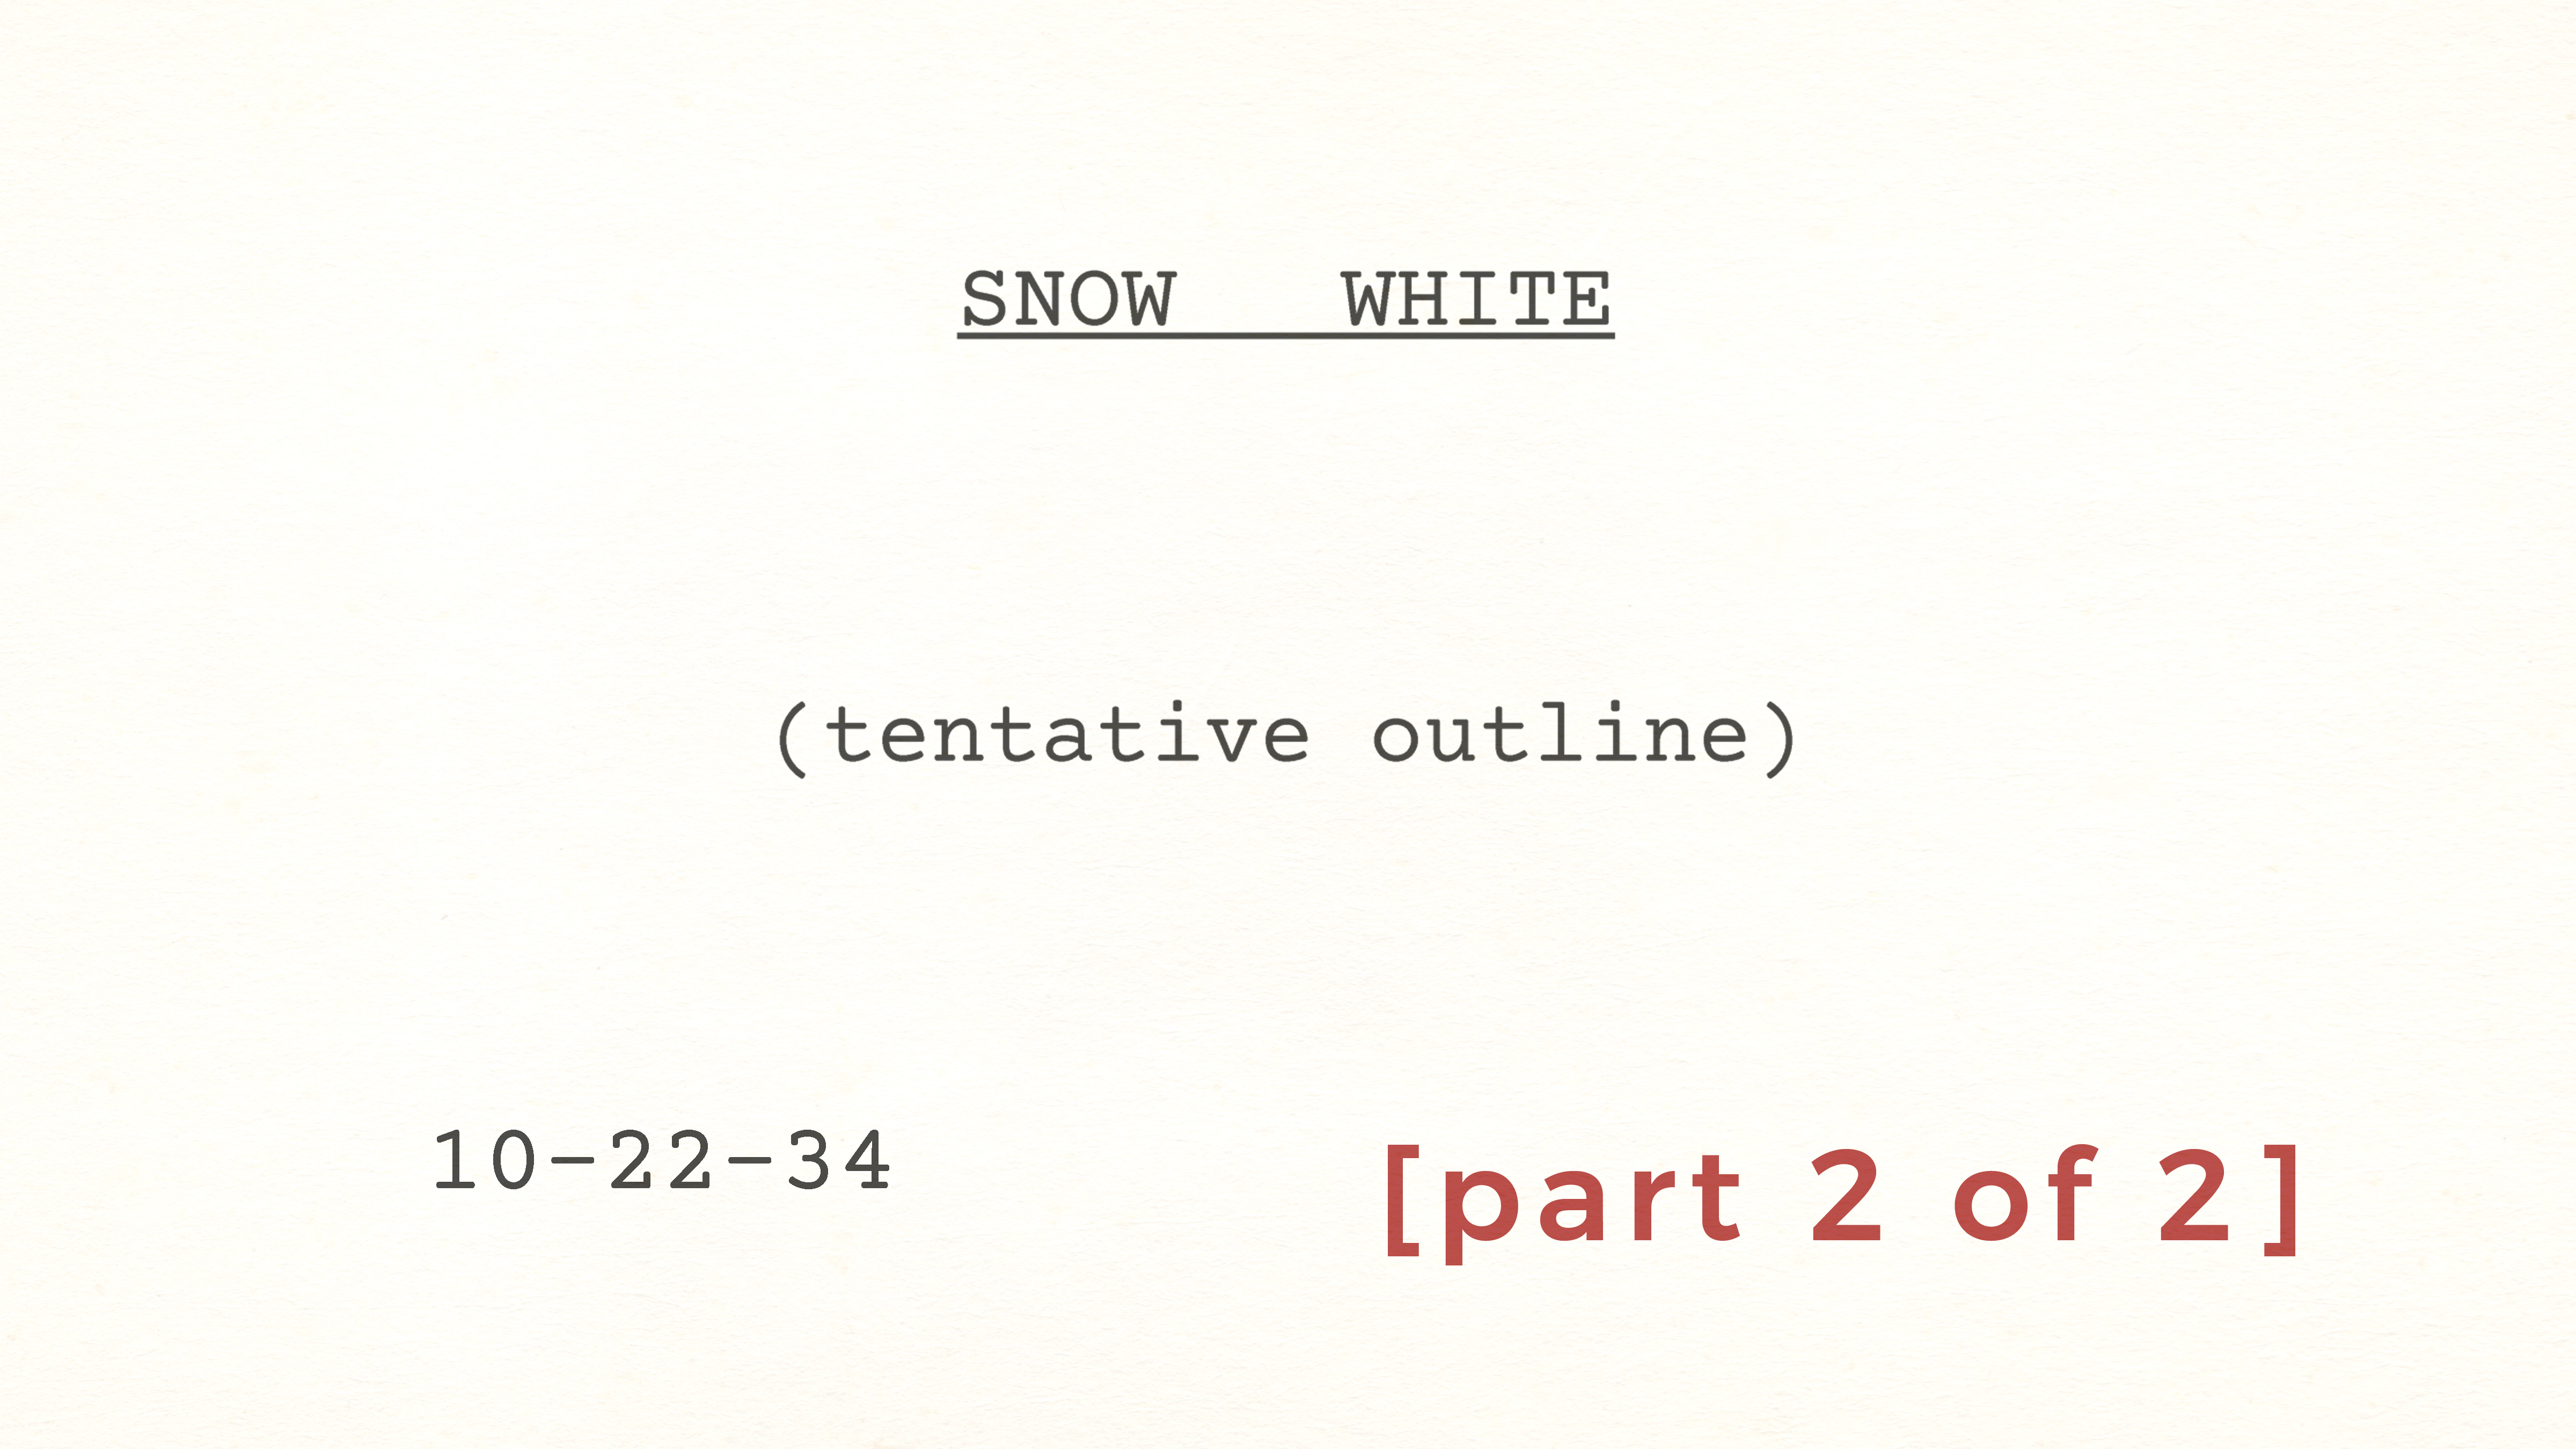 Walt Disney's SNOW WHITE Tentative Outline dated October 22, 1934 [Part 2 of 2]